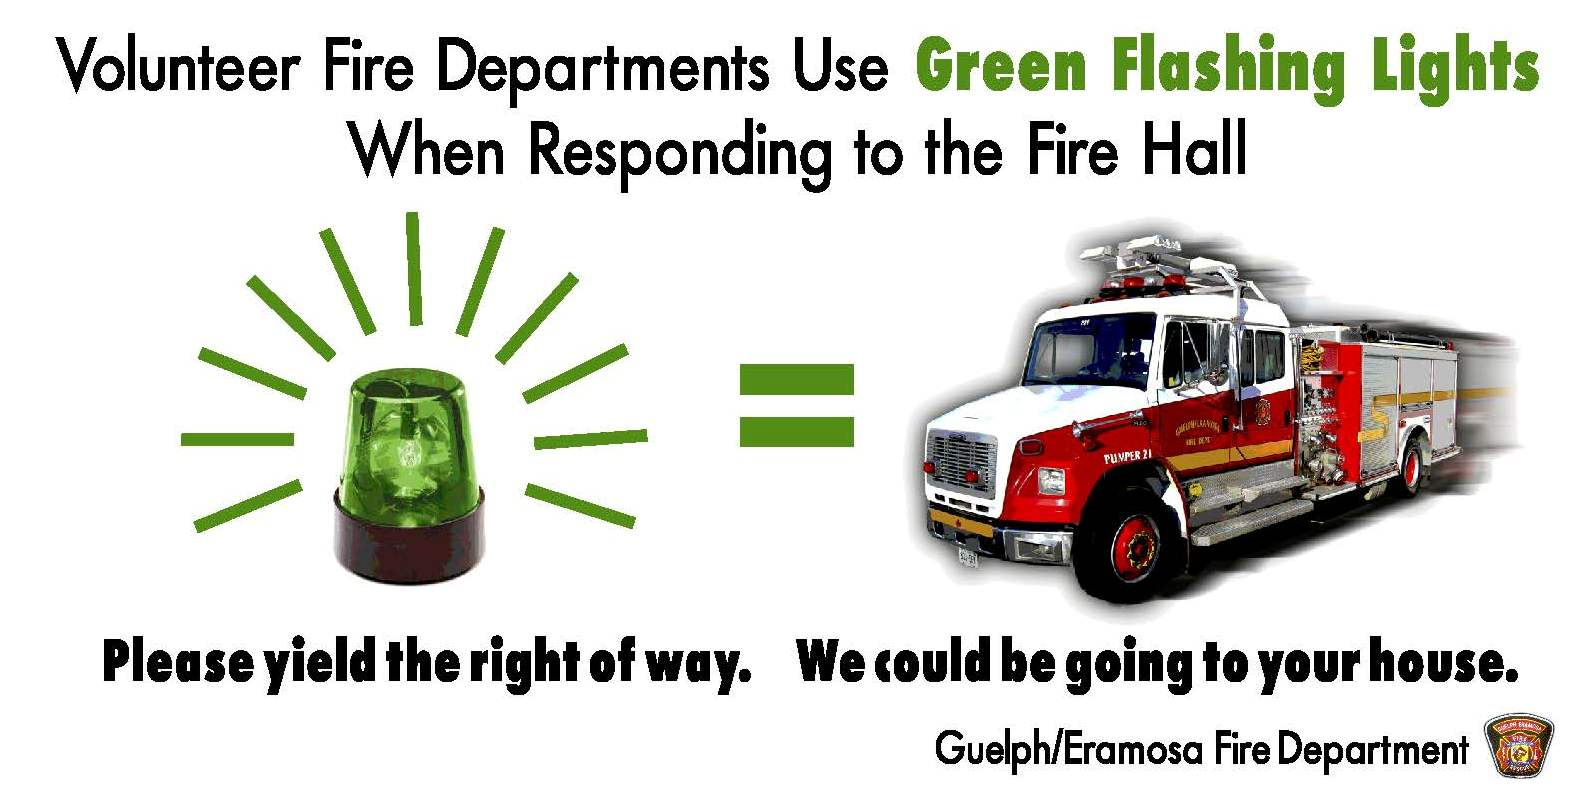 An image indicating that drivers should yield to a green light on a volunteer fire fighters vehicle, which they use to respond to calls